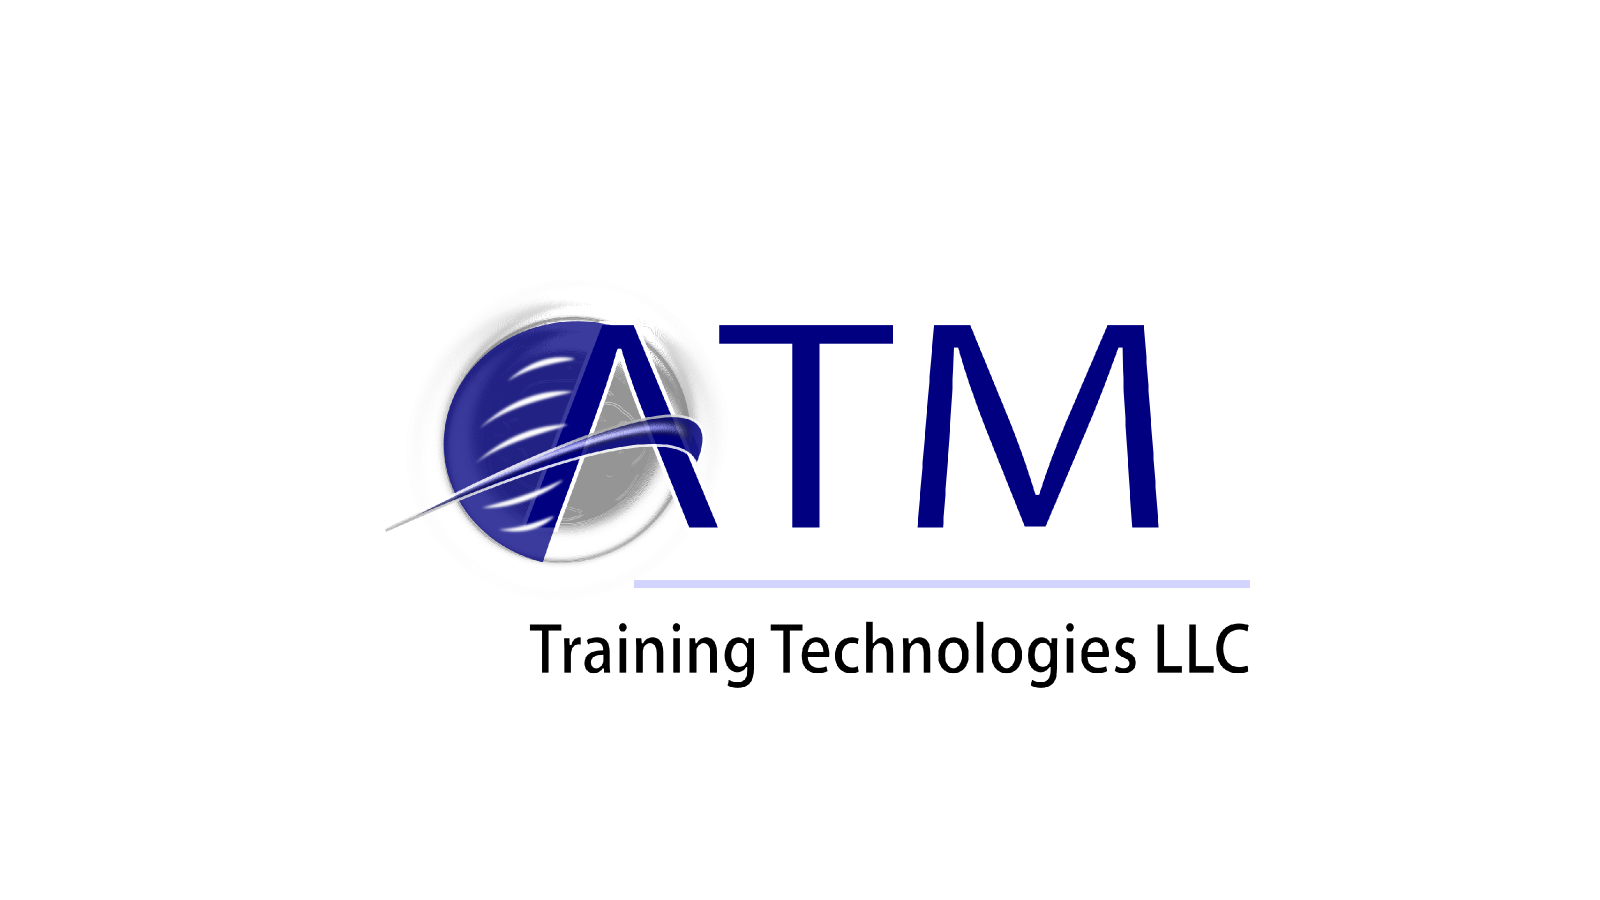 ATM Training Technologies Logo Sample.png